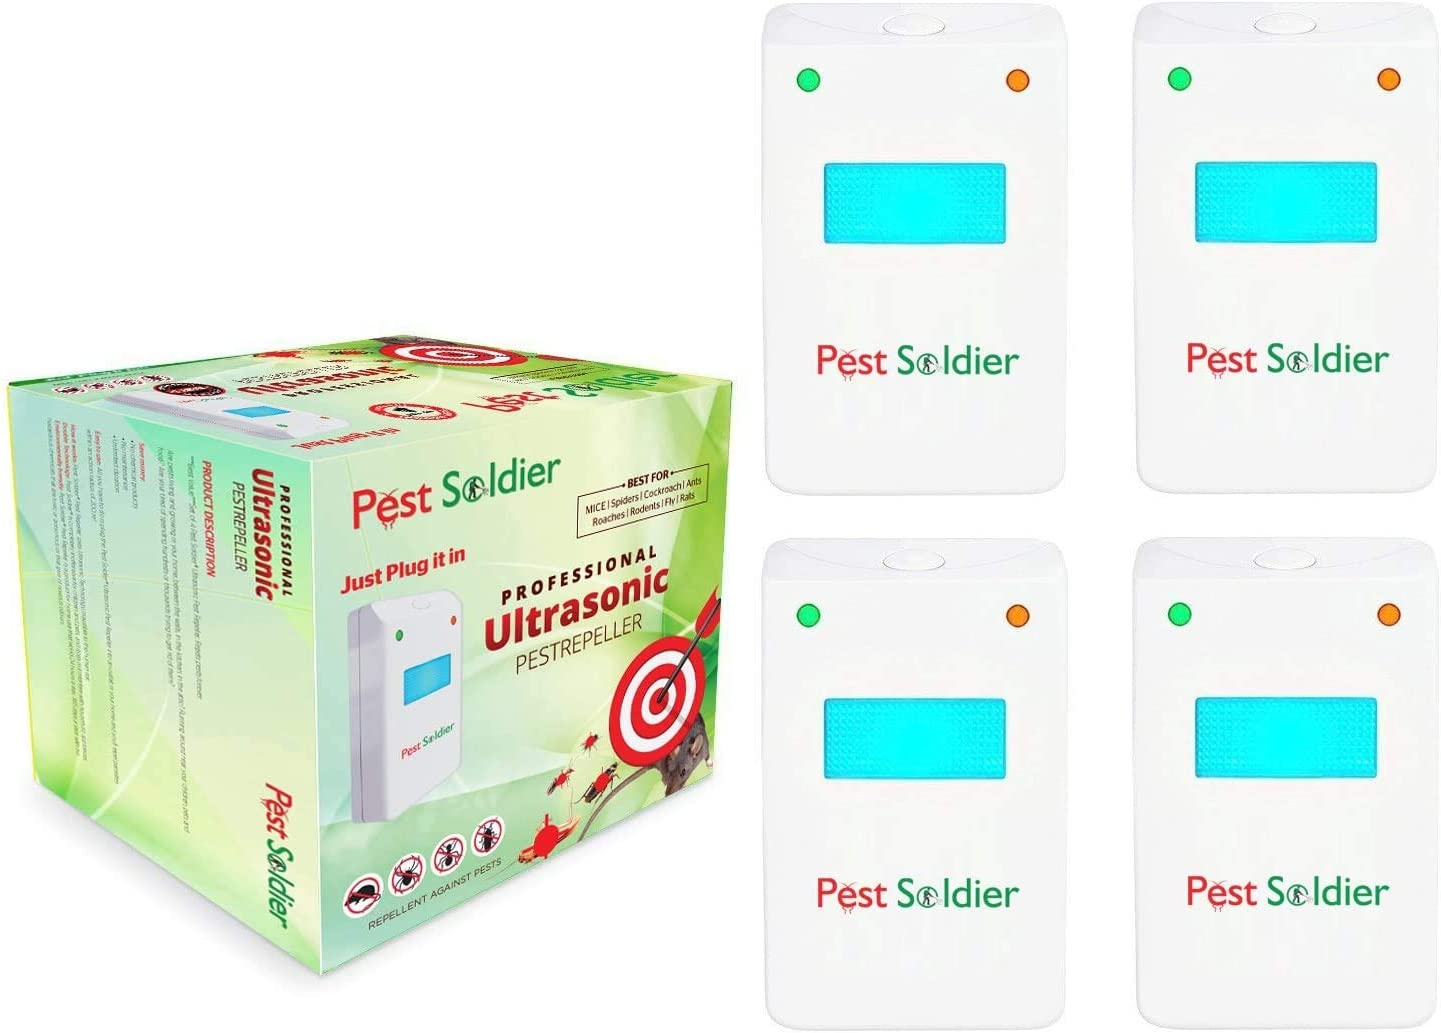 Pest Soldier Set of 4 Ultrasonic Pest Repeller Device Electronic Plug in Indoor - Repellent for Mice, Insects, Rats, Cockroaches, Spiders, Flies - Pest Control for Home, Office, Warehouse, Hotel